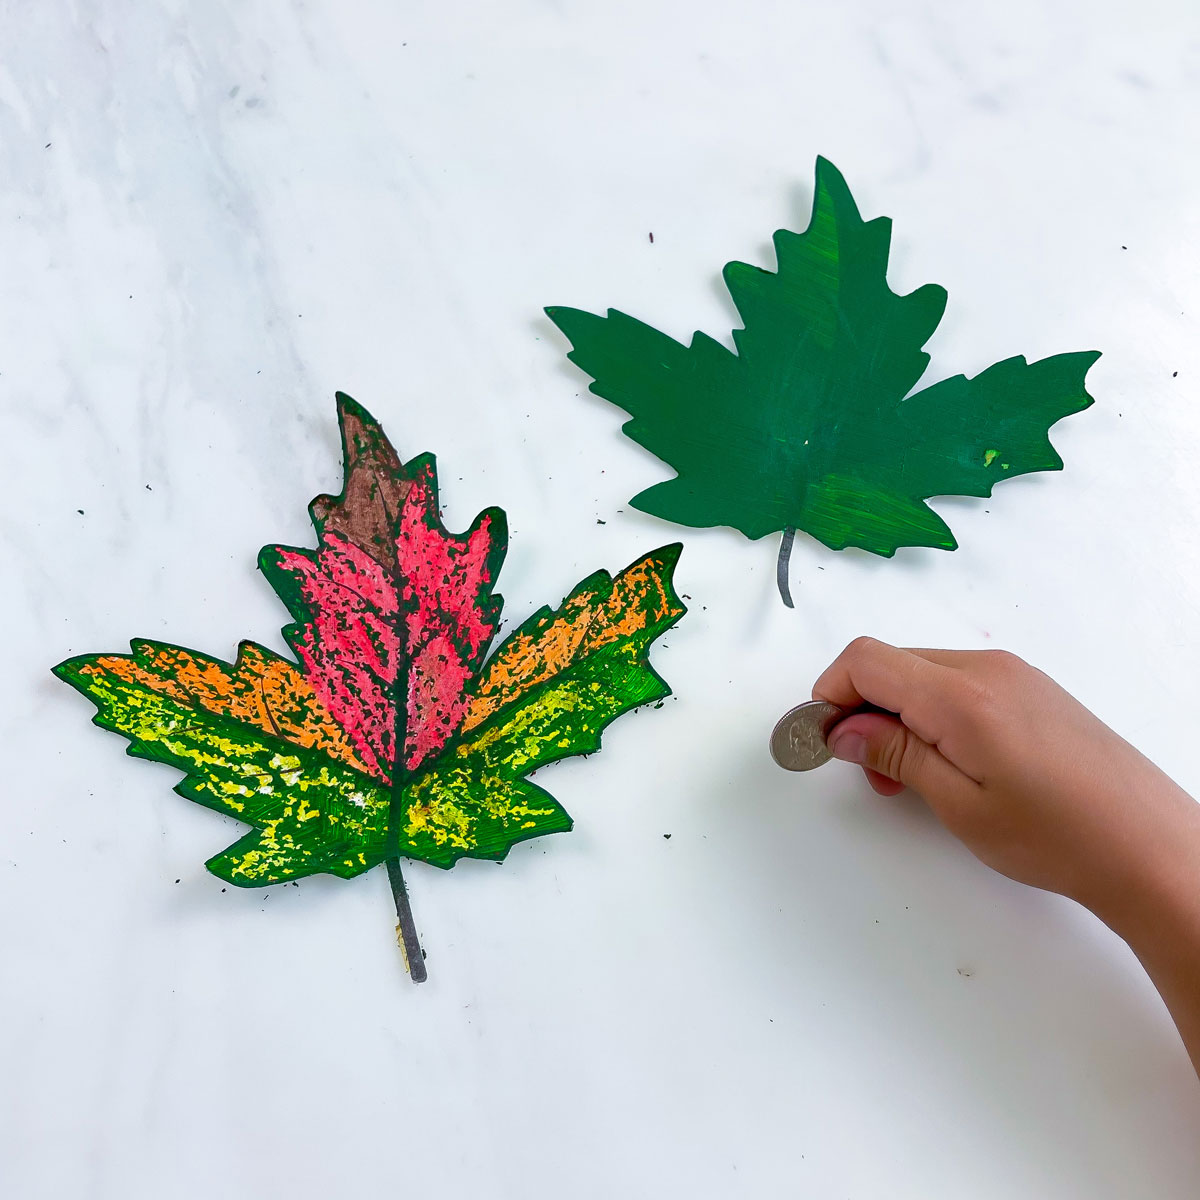 Fall Leaf Craft – From Green to Beautiful Autumn Colors